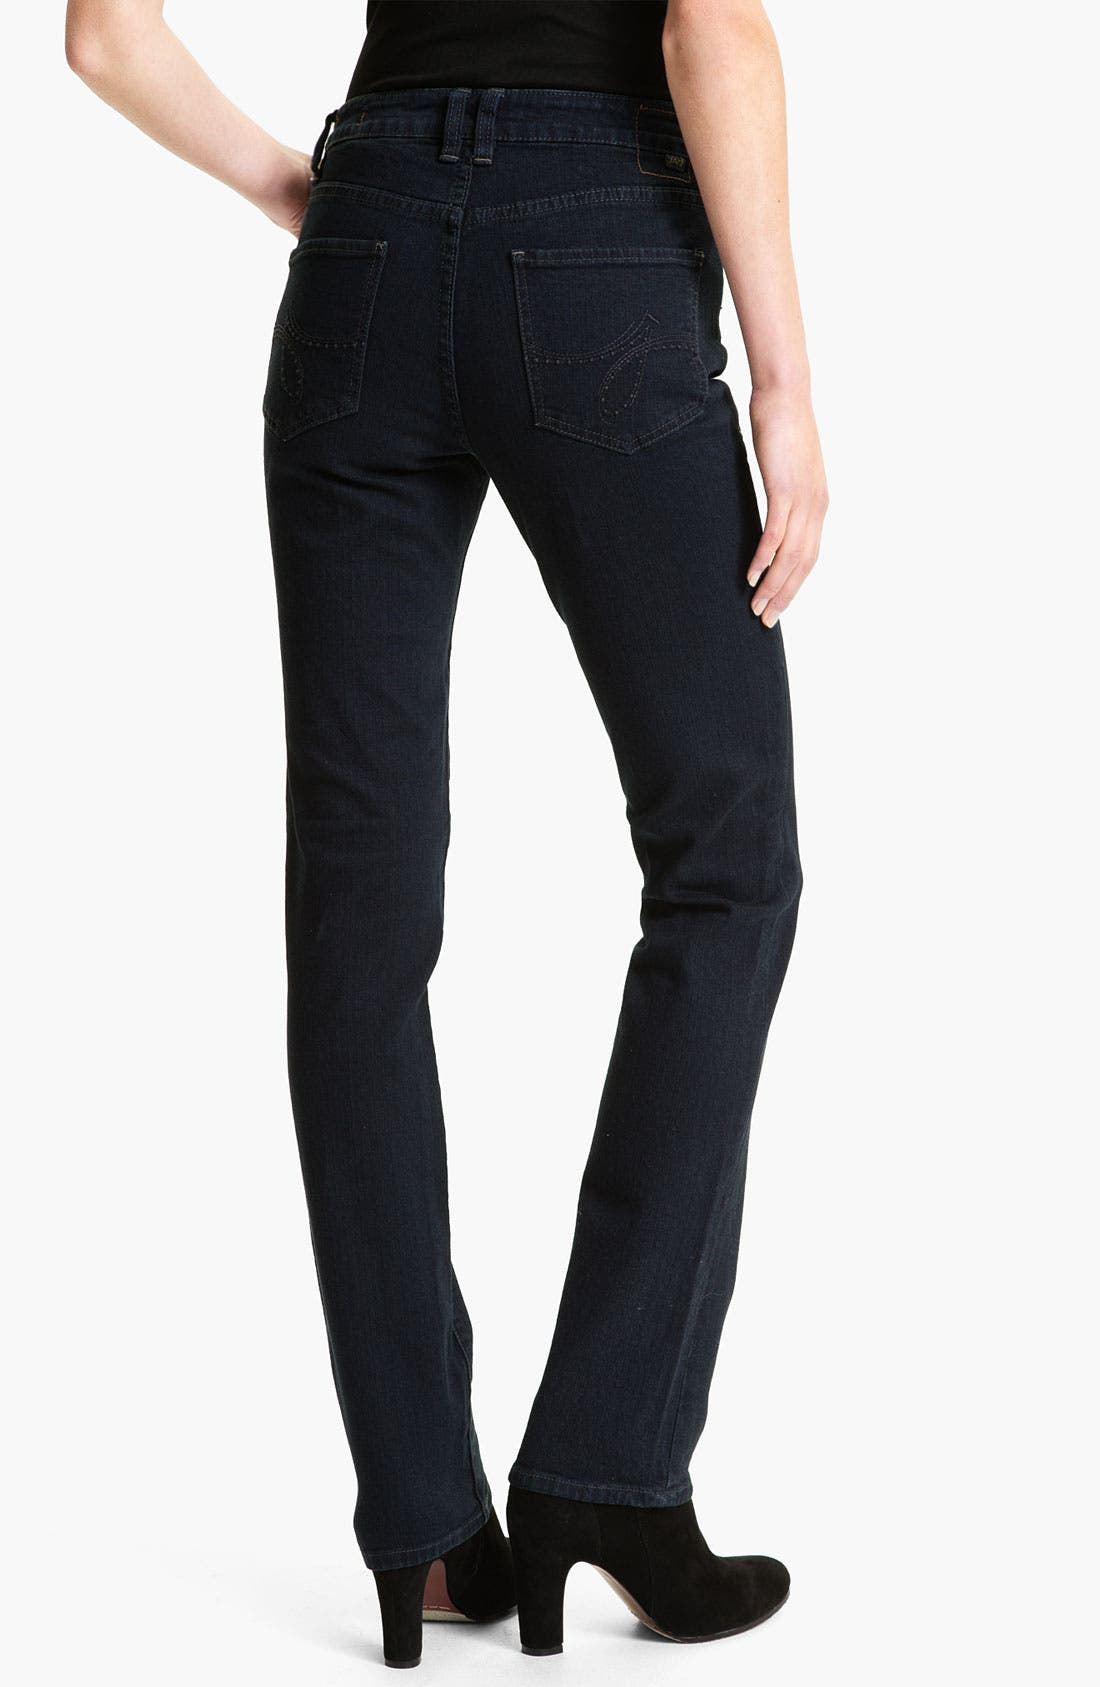 Alternate Image 2  - Jag Jeans 'Donovan' Straight Leg Jeans (After Midnight) (Petite)